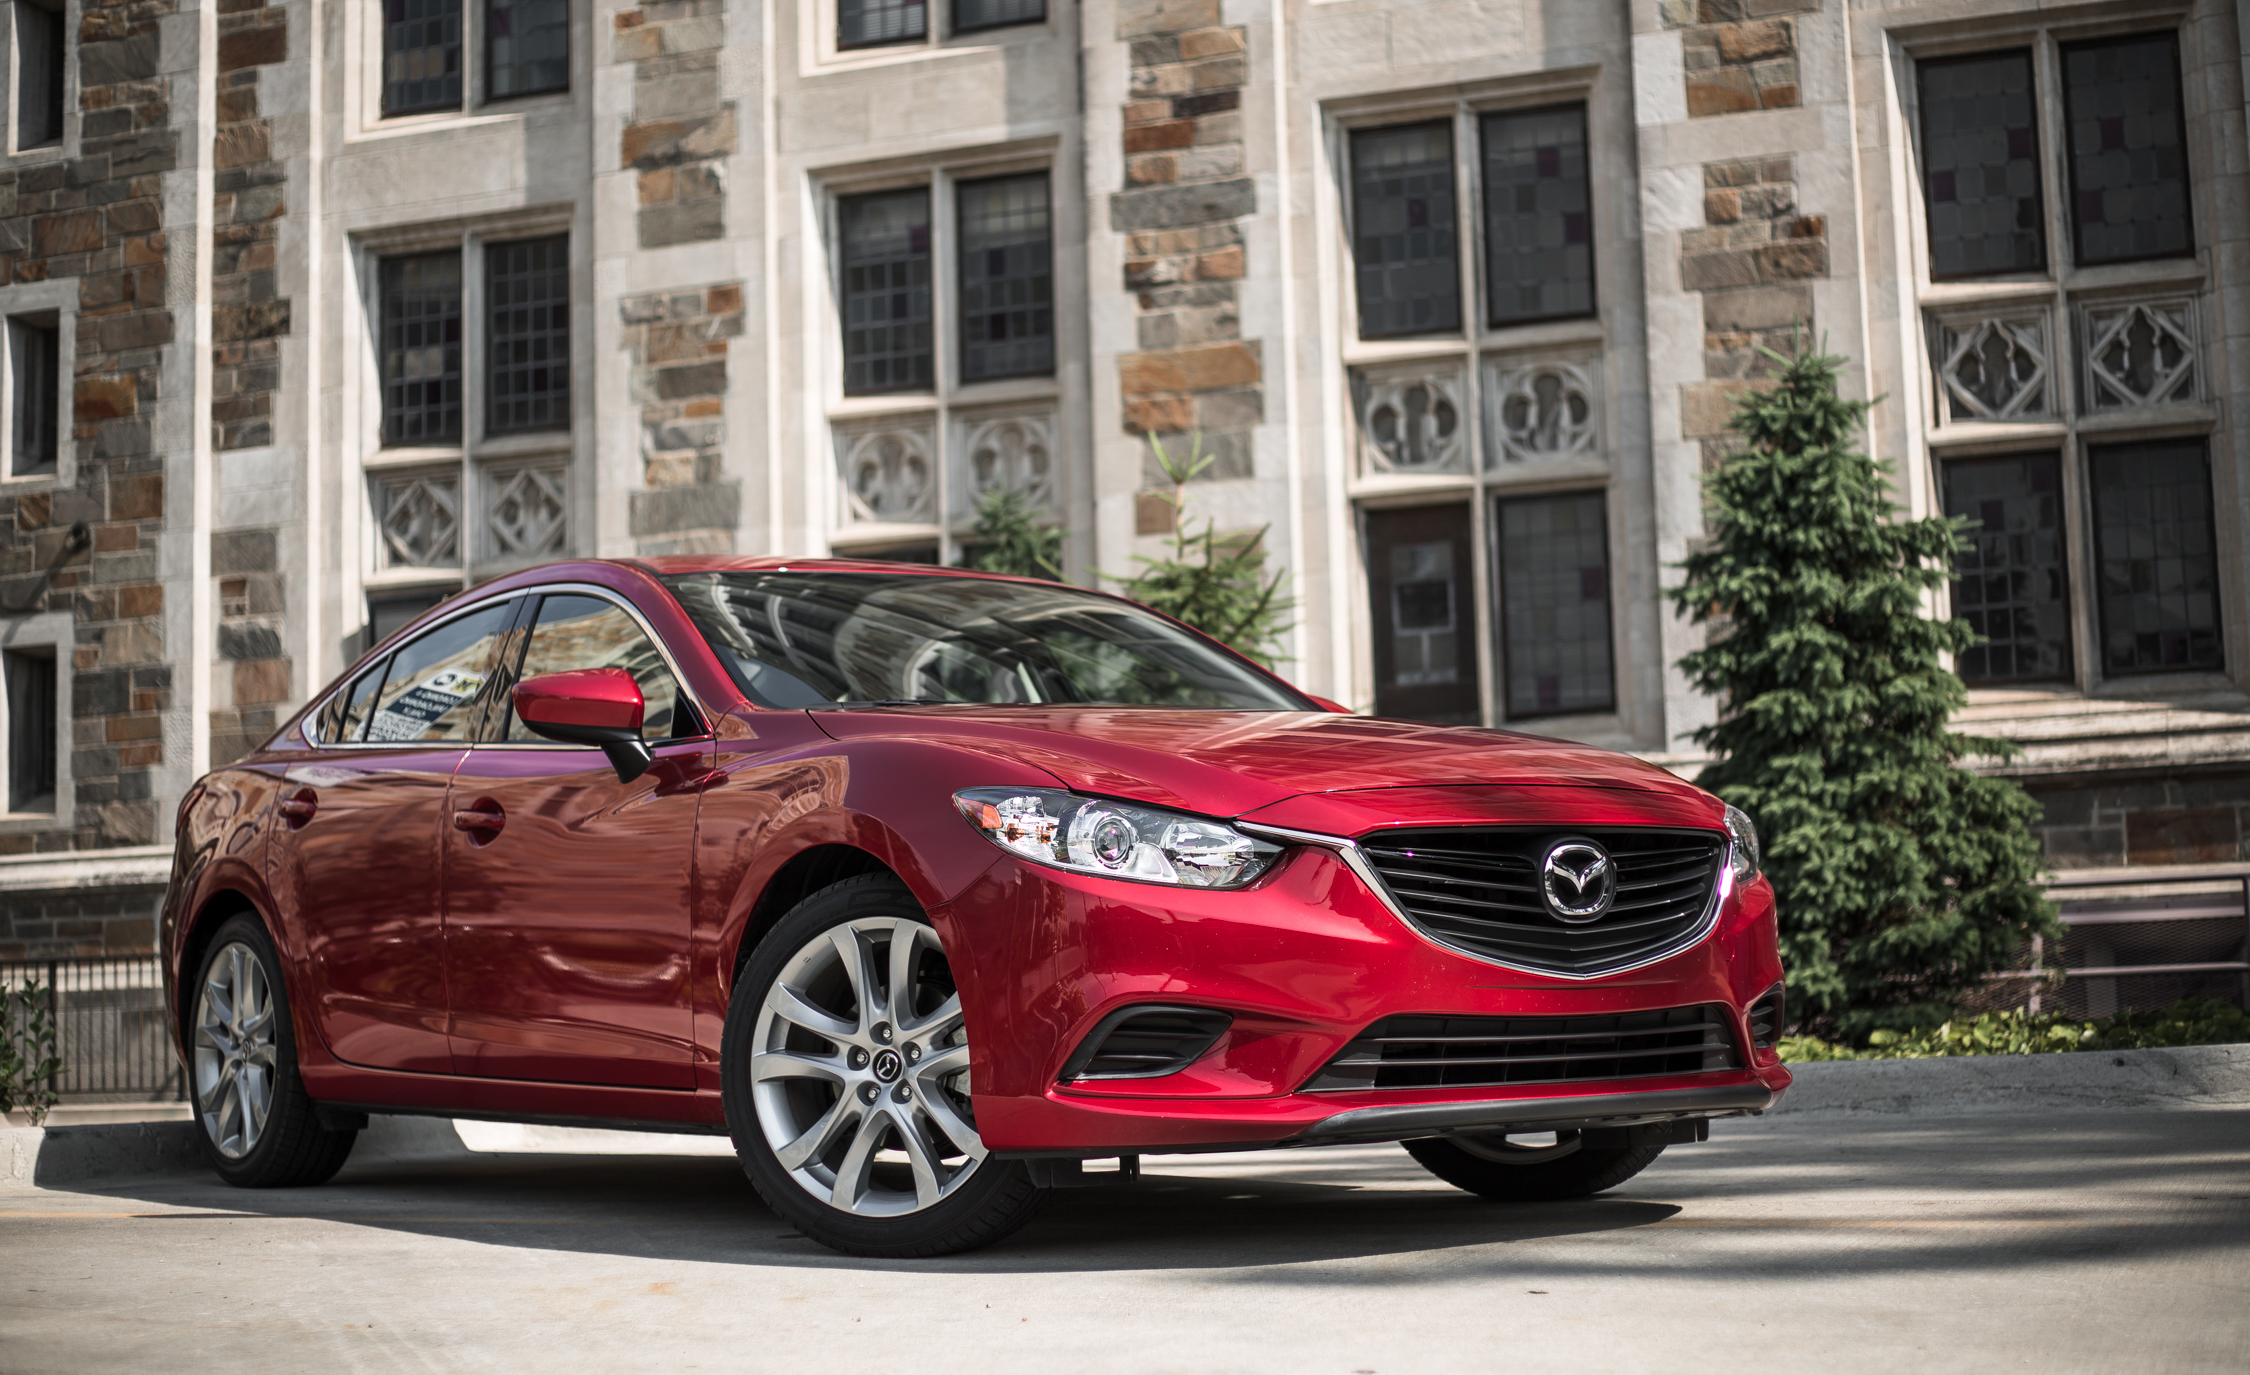 2016 Mazda 6 Touring (View 13 of 23)